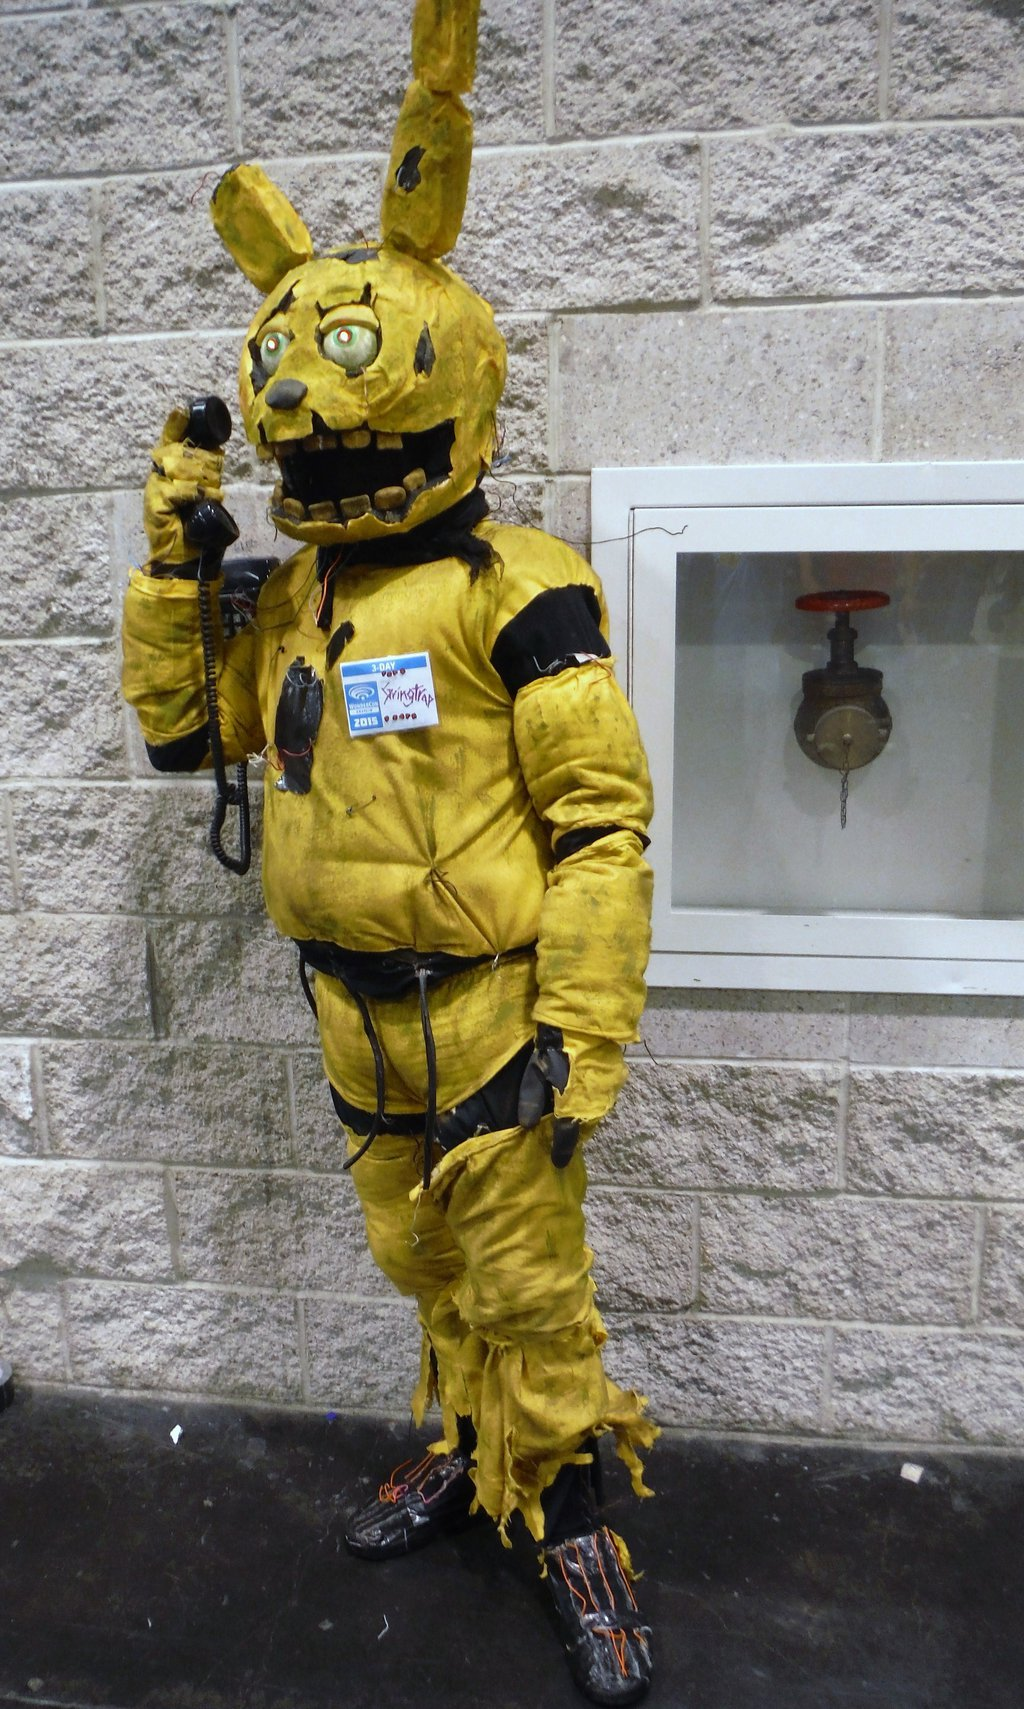 five nights at freddys 3 five nights at freddys sister location costume yellow personal protective